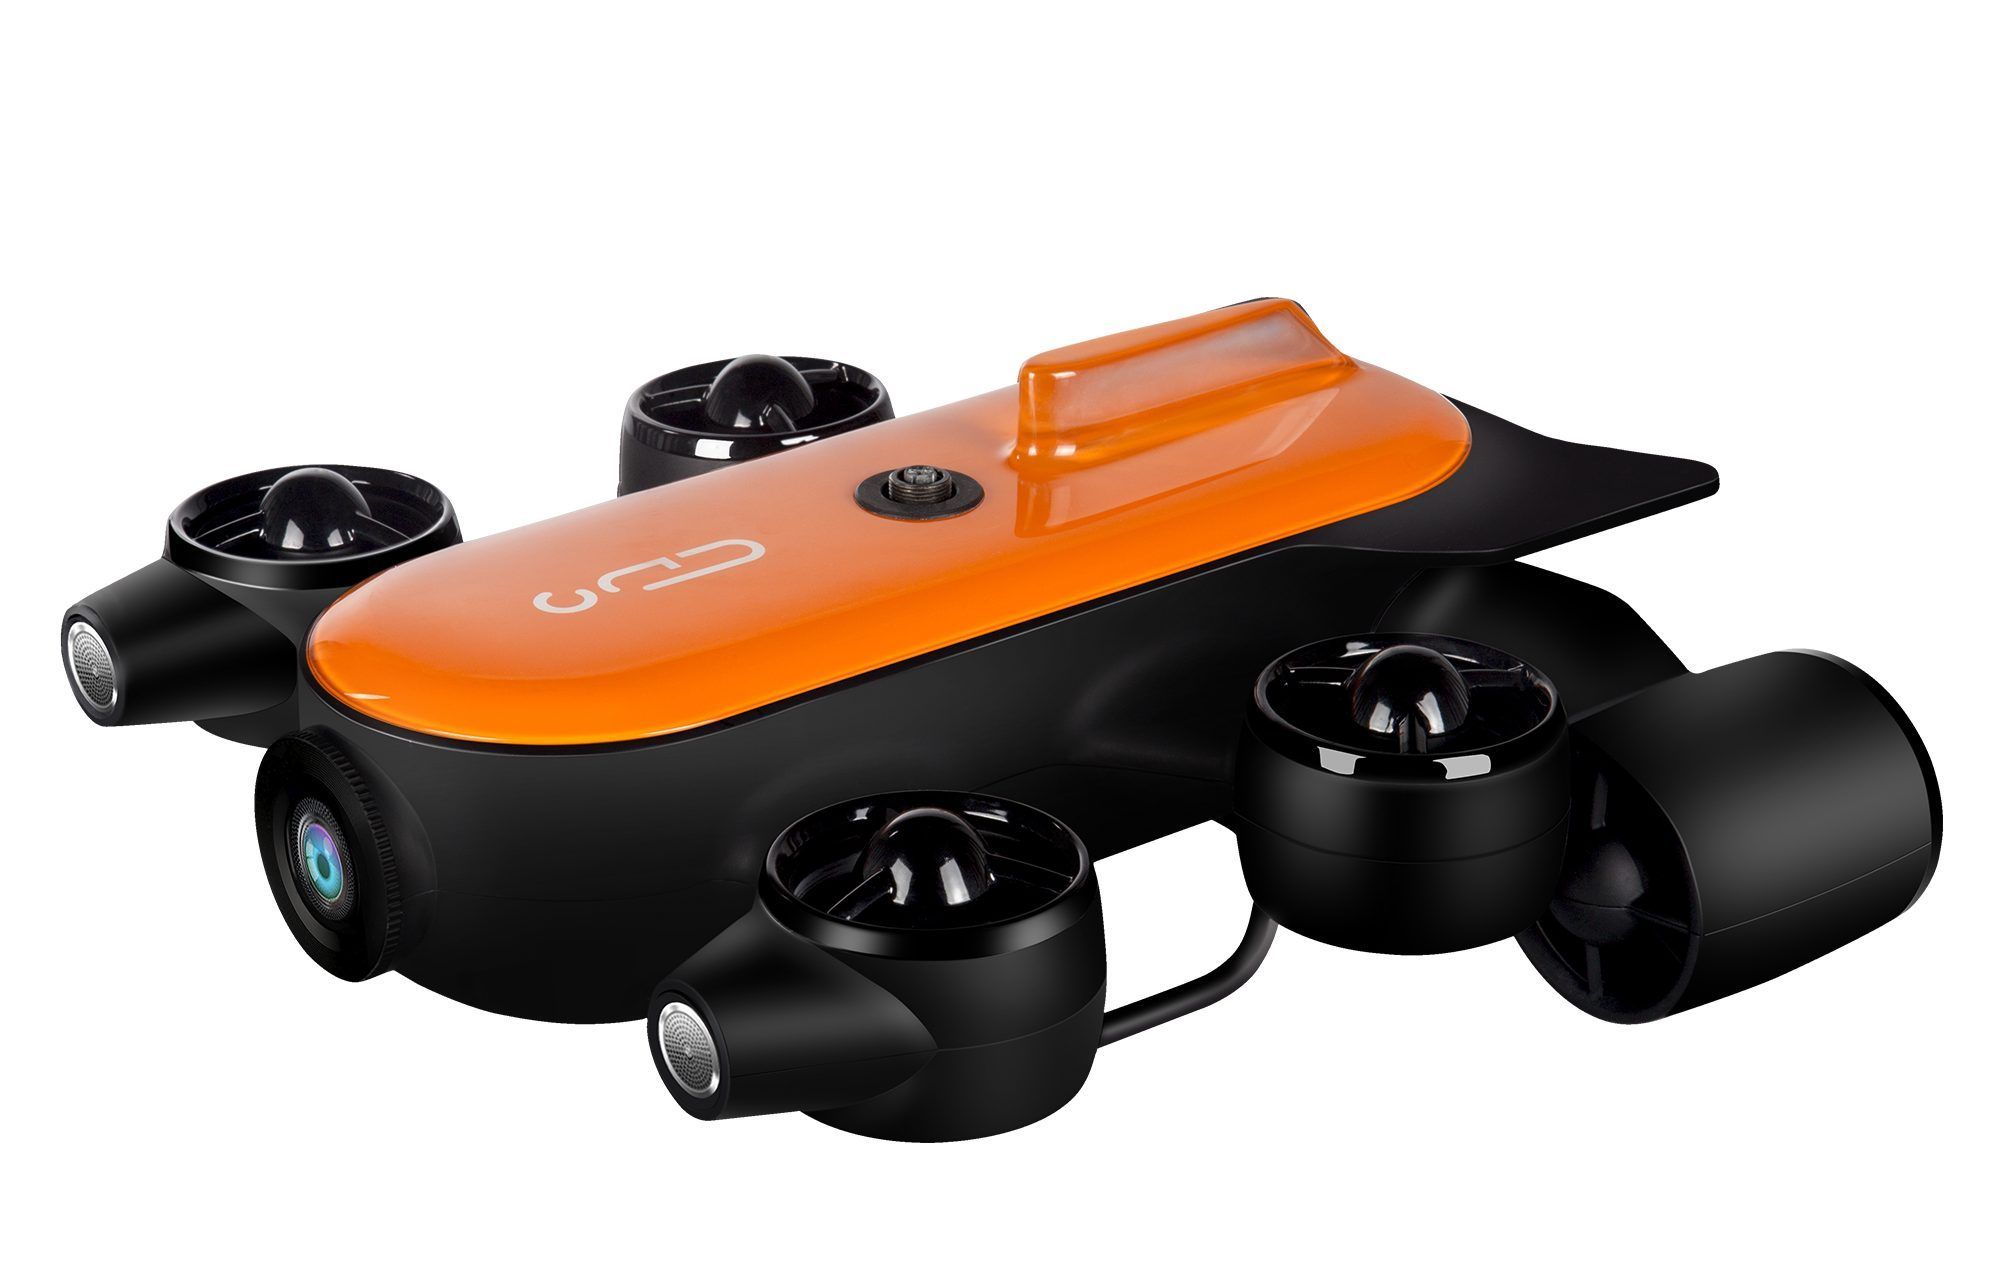 Titan Underwater Drone - Feature